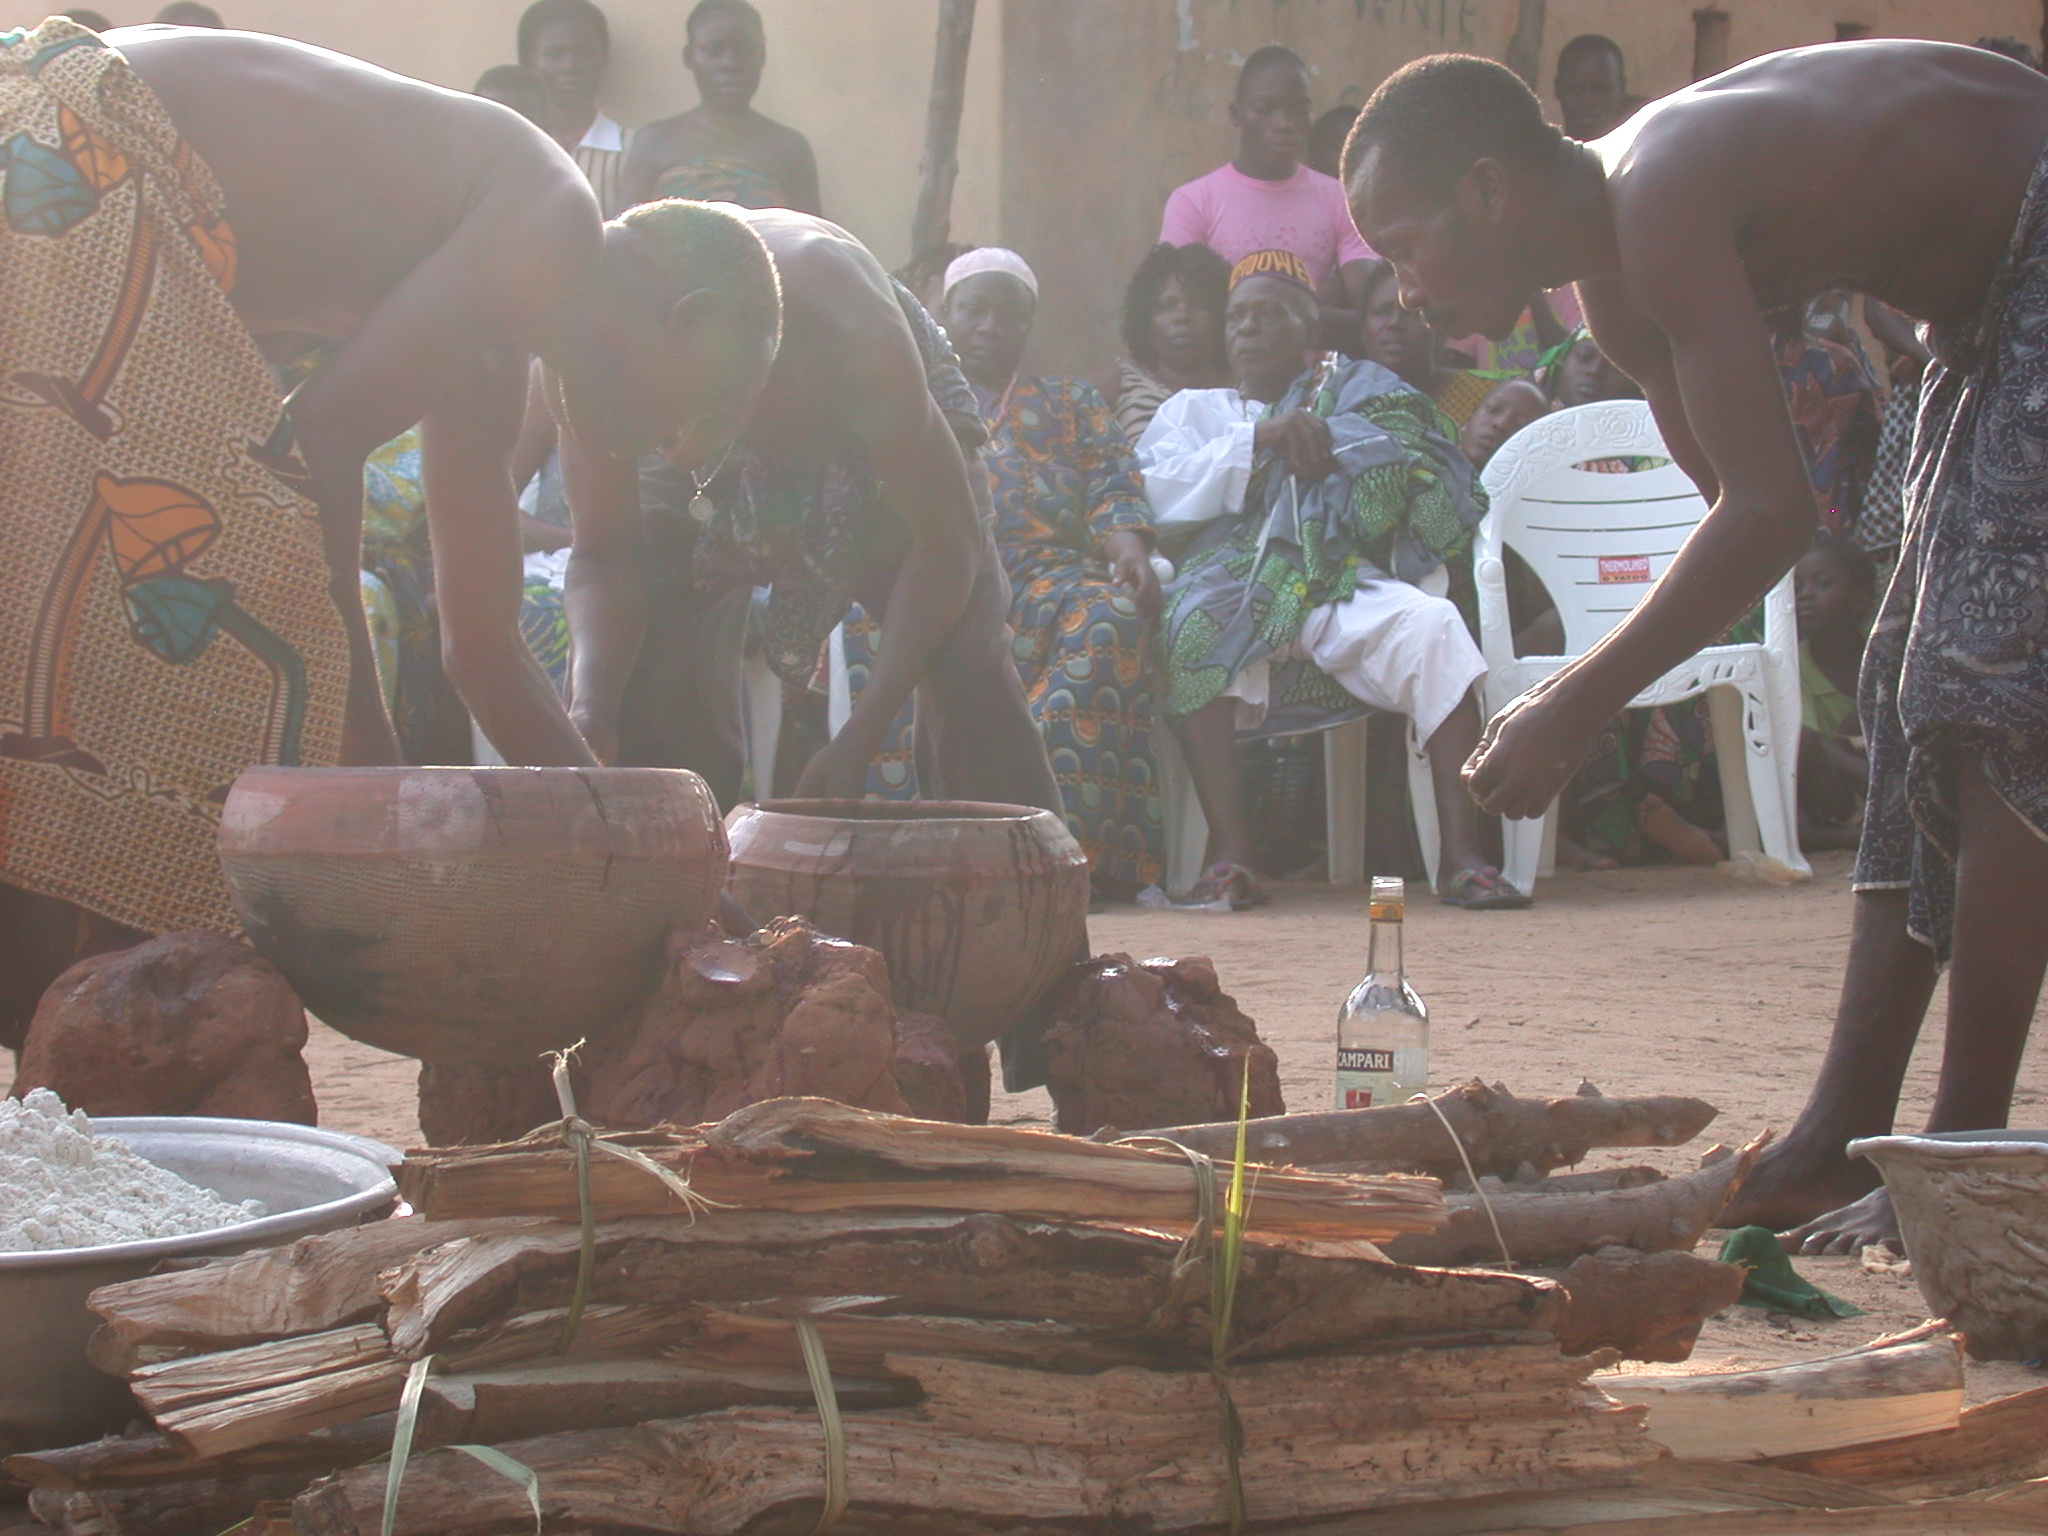 Preparing Sacrificial Goat Meat for Cooking, Vodun Ritual, Ouidah, Benin